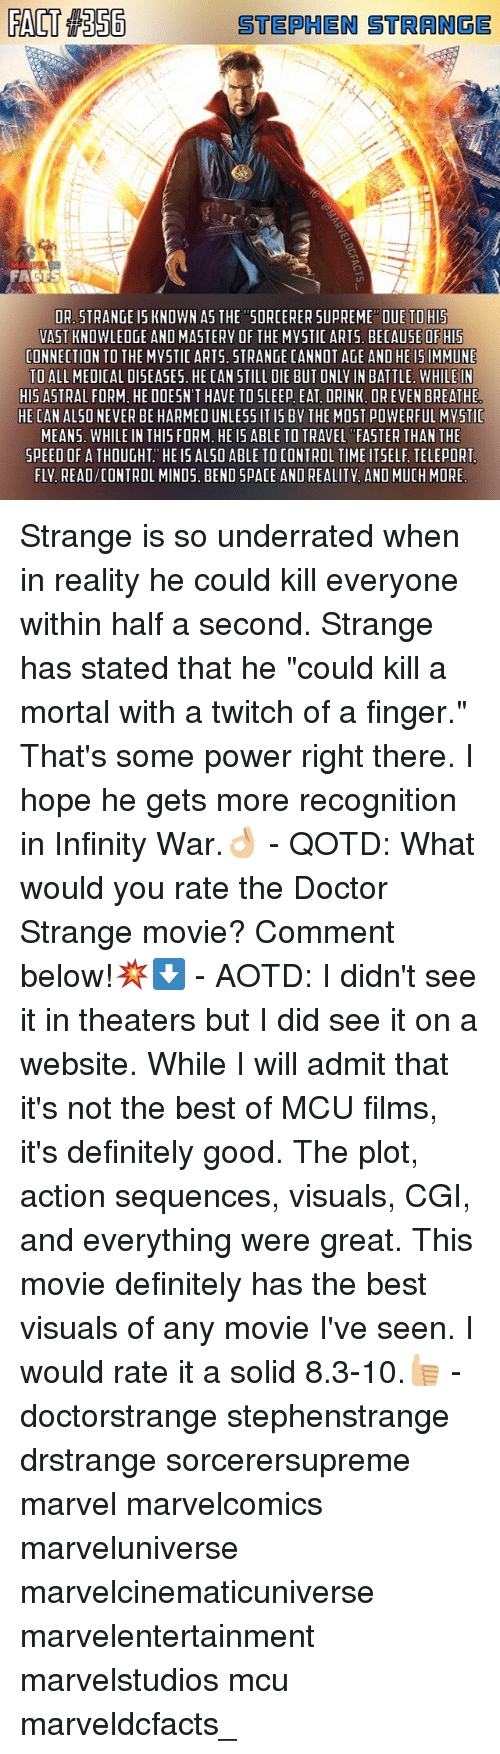 """Definitely, Doctor, and Memes: STEPHEN STRANGE  FA  DR. STRANGE I5 KNOWN AS THE """"5ORCERER DUE TO HIS  VAST KNOWLEDGE AND MASTERY OF THE MYSTIC ARTS. BECAUSE OF HIS  CONNECTION TO THE MYSTIC ARTS. STRANGE CANNOT AGE AND HE I5IMMUNE  TO ALL MEDICAL DISEASES. HE CAN STILL DIE BUT ONLY IN BATTLE. WHILE IN  HIS ASTRAL FORM, HE DOESN'T HAVE TO SLEEP EAT, DRINK, OR EVEN BREATHE  HE CAN ALSO NEVER BE HARMED UNLESS IT IS BY THE MOST POWERFUL MYSTIC  MEANS. WHILE IN THIS FORM. HE IS ABLE TO TRAVEL """"FASTER THAN THE  SPEED OF A THOUGHT HE IS ALSO ABLE TO CONTROL TIME ITSELF TELEPORT  FLY. READ/CONTROL MINDS. BEND SPACE AND REALITY. AND MUCH MORE  UPREME"""" Strange is so underrated when in reality he could kill everyone within half a second. Strange has stated that he """"could kill a mortal with a twitch of a finger."""" That's some power right there. I hope he gets more recognition in Infinity War.👌🏼 - QOTD: What would you rate the Doctor Strange movie? Comment below!💥⬇️ - AOTD: I didn't see it in theaters but I did see it on a website. While I will admit that it's not the best of MCU films, it's definitely good. The plot, action sequences, visuals, CGI, and everything were great. This movie definitely has the best visuals of any movie I've seen. I would rate it a solid 8.3-10.👍🏼 - doctorstrange stephenstrange drstrange sorcerersupreme marvel marvelcomics marveluniverse marvelcinematicuniverse marvelentertainment marvelstudios mcu marveldcfacts_"""